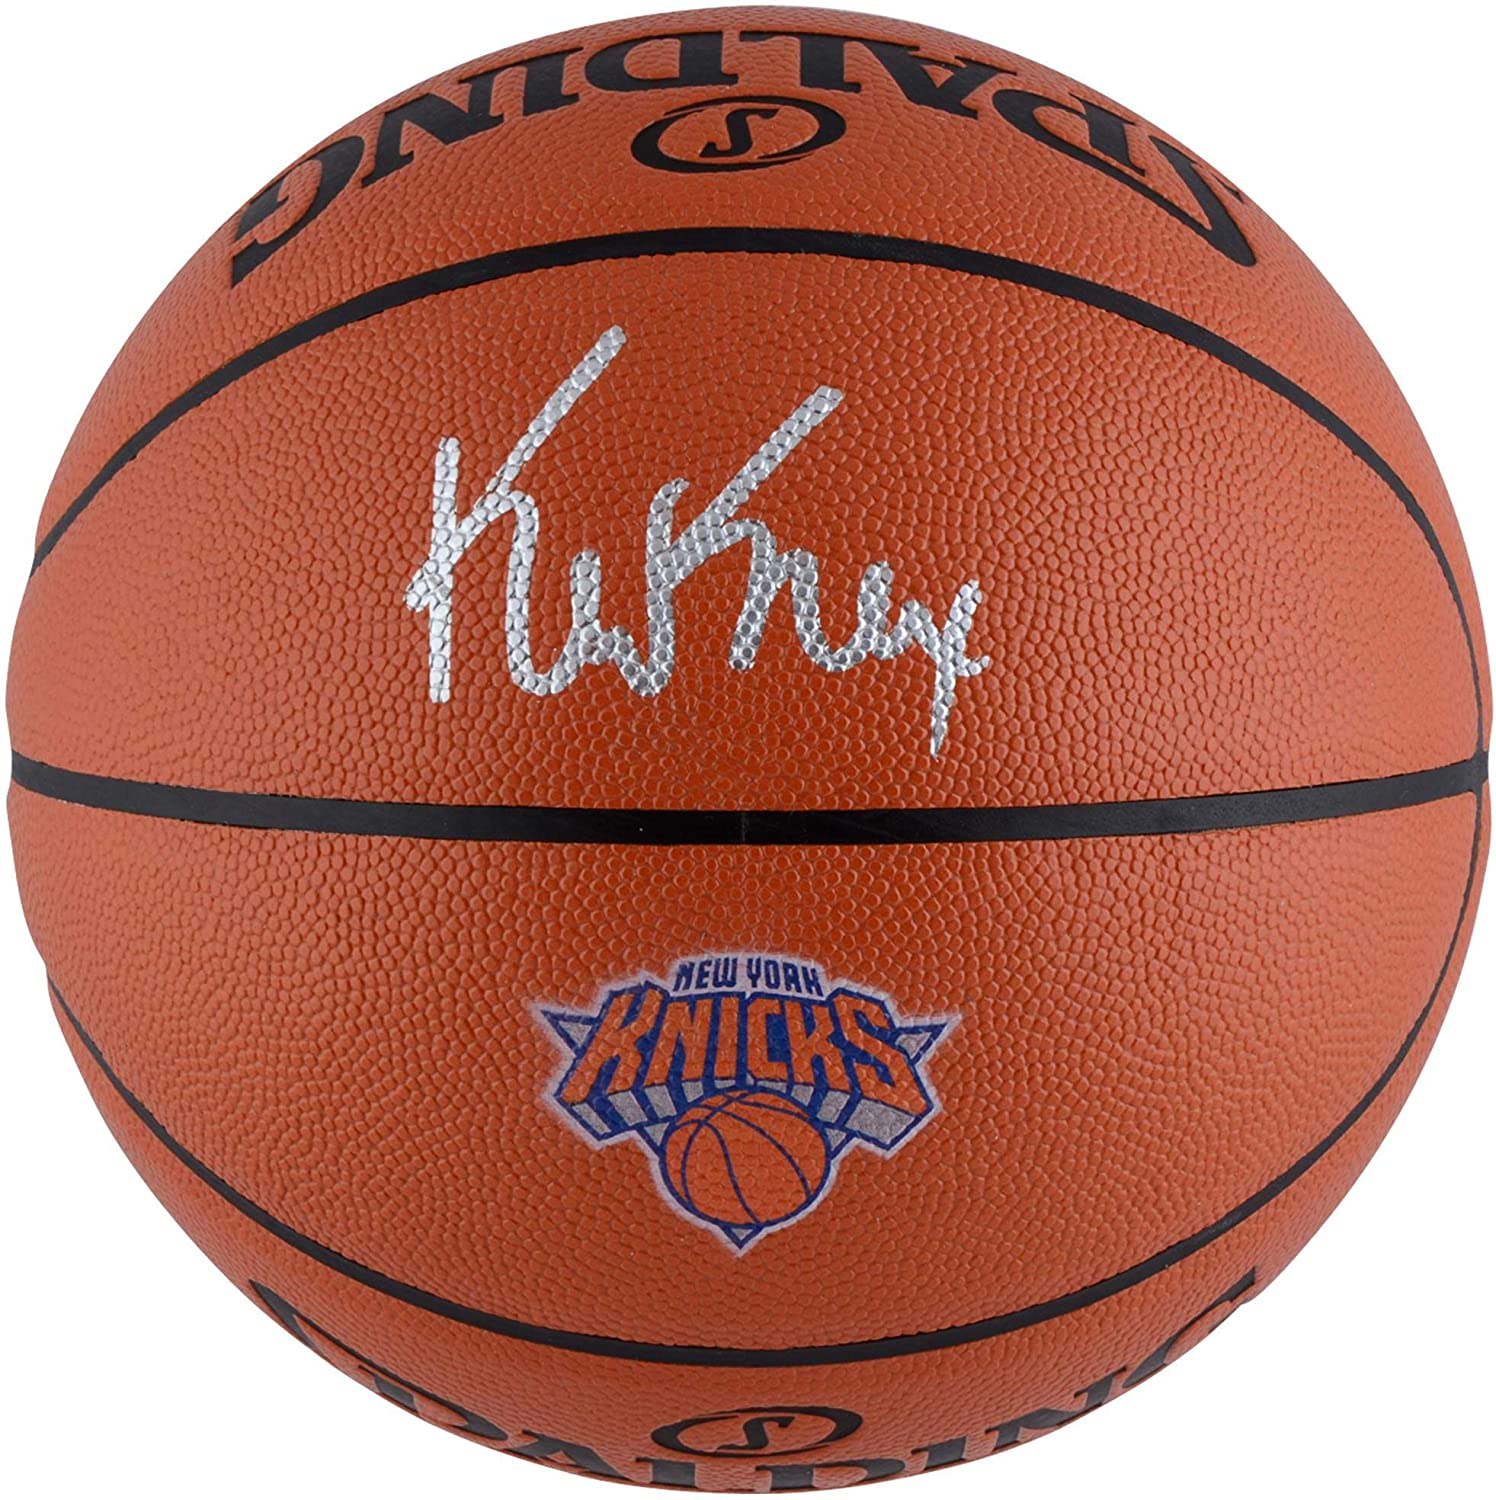 Fanatics Authentic Certified Kevin Knox New York Knicks Autographed Spalding Logo Basketball Autographed Basketballs